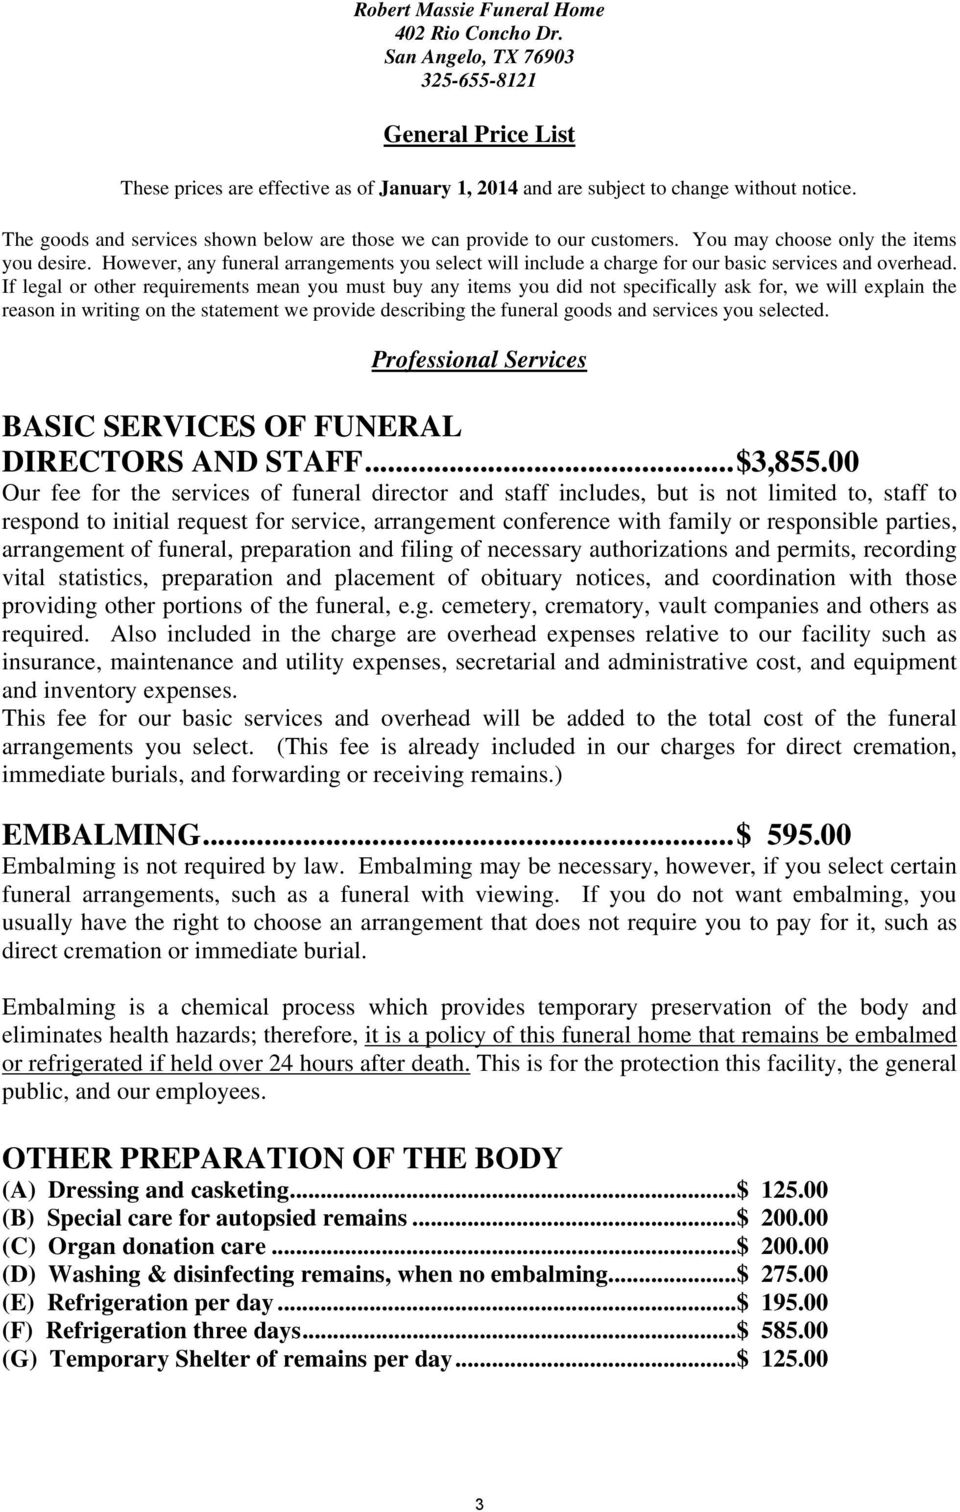 GENERAL PRICE LIST  *Required by Texas State Law for all